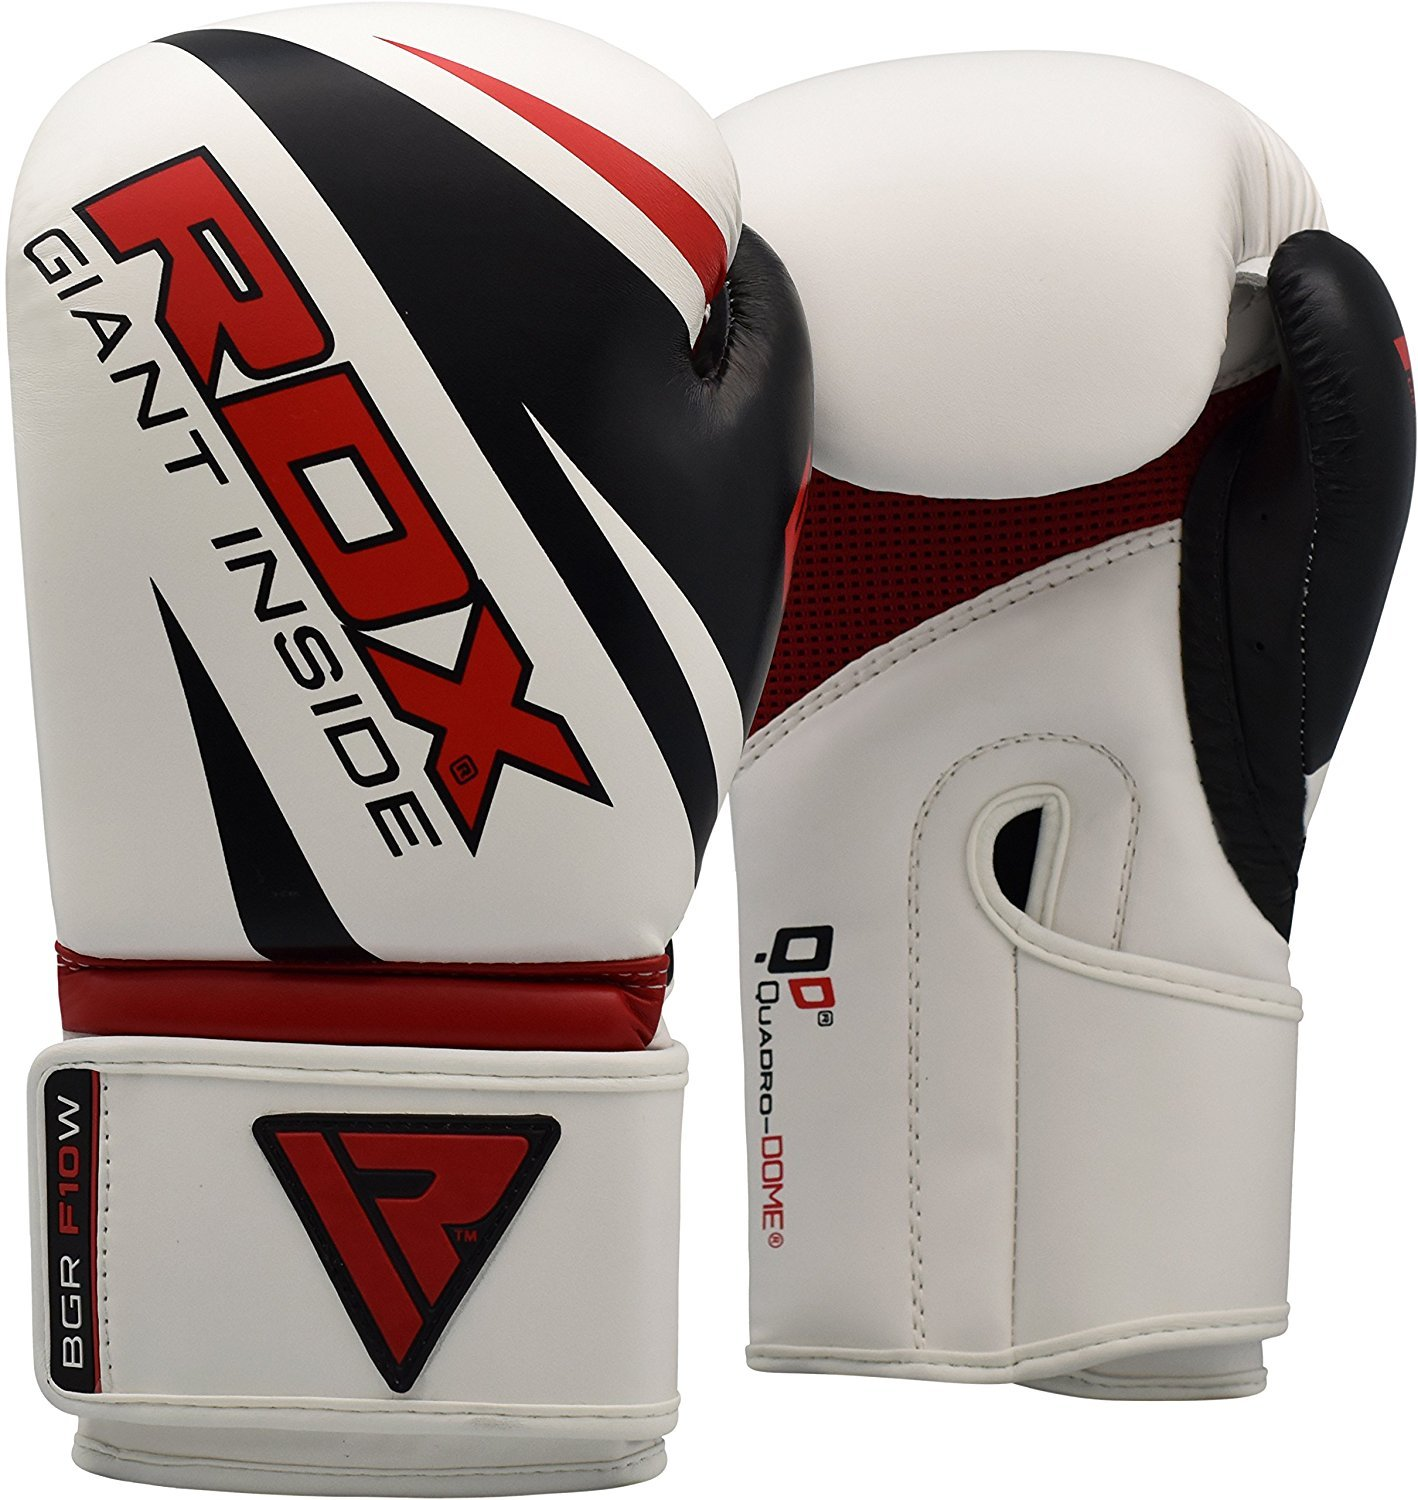 RDX Punching Bag Maya Hide Leather 4FT 5FT UNFILLED MMA Boxing Punching Gloves Muay Thai Kickboxing Training